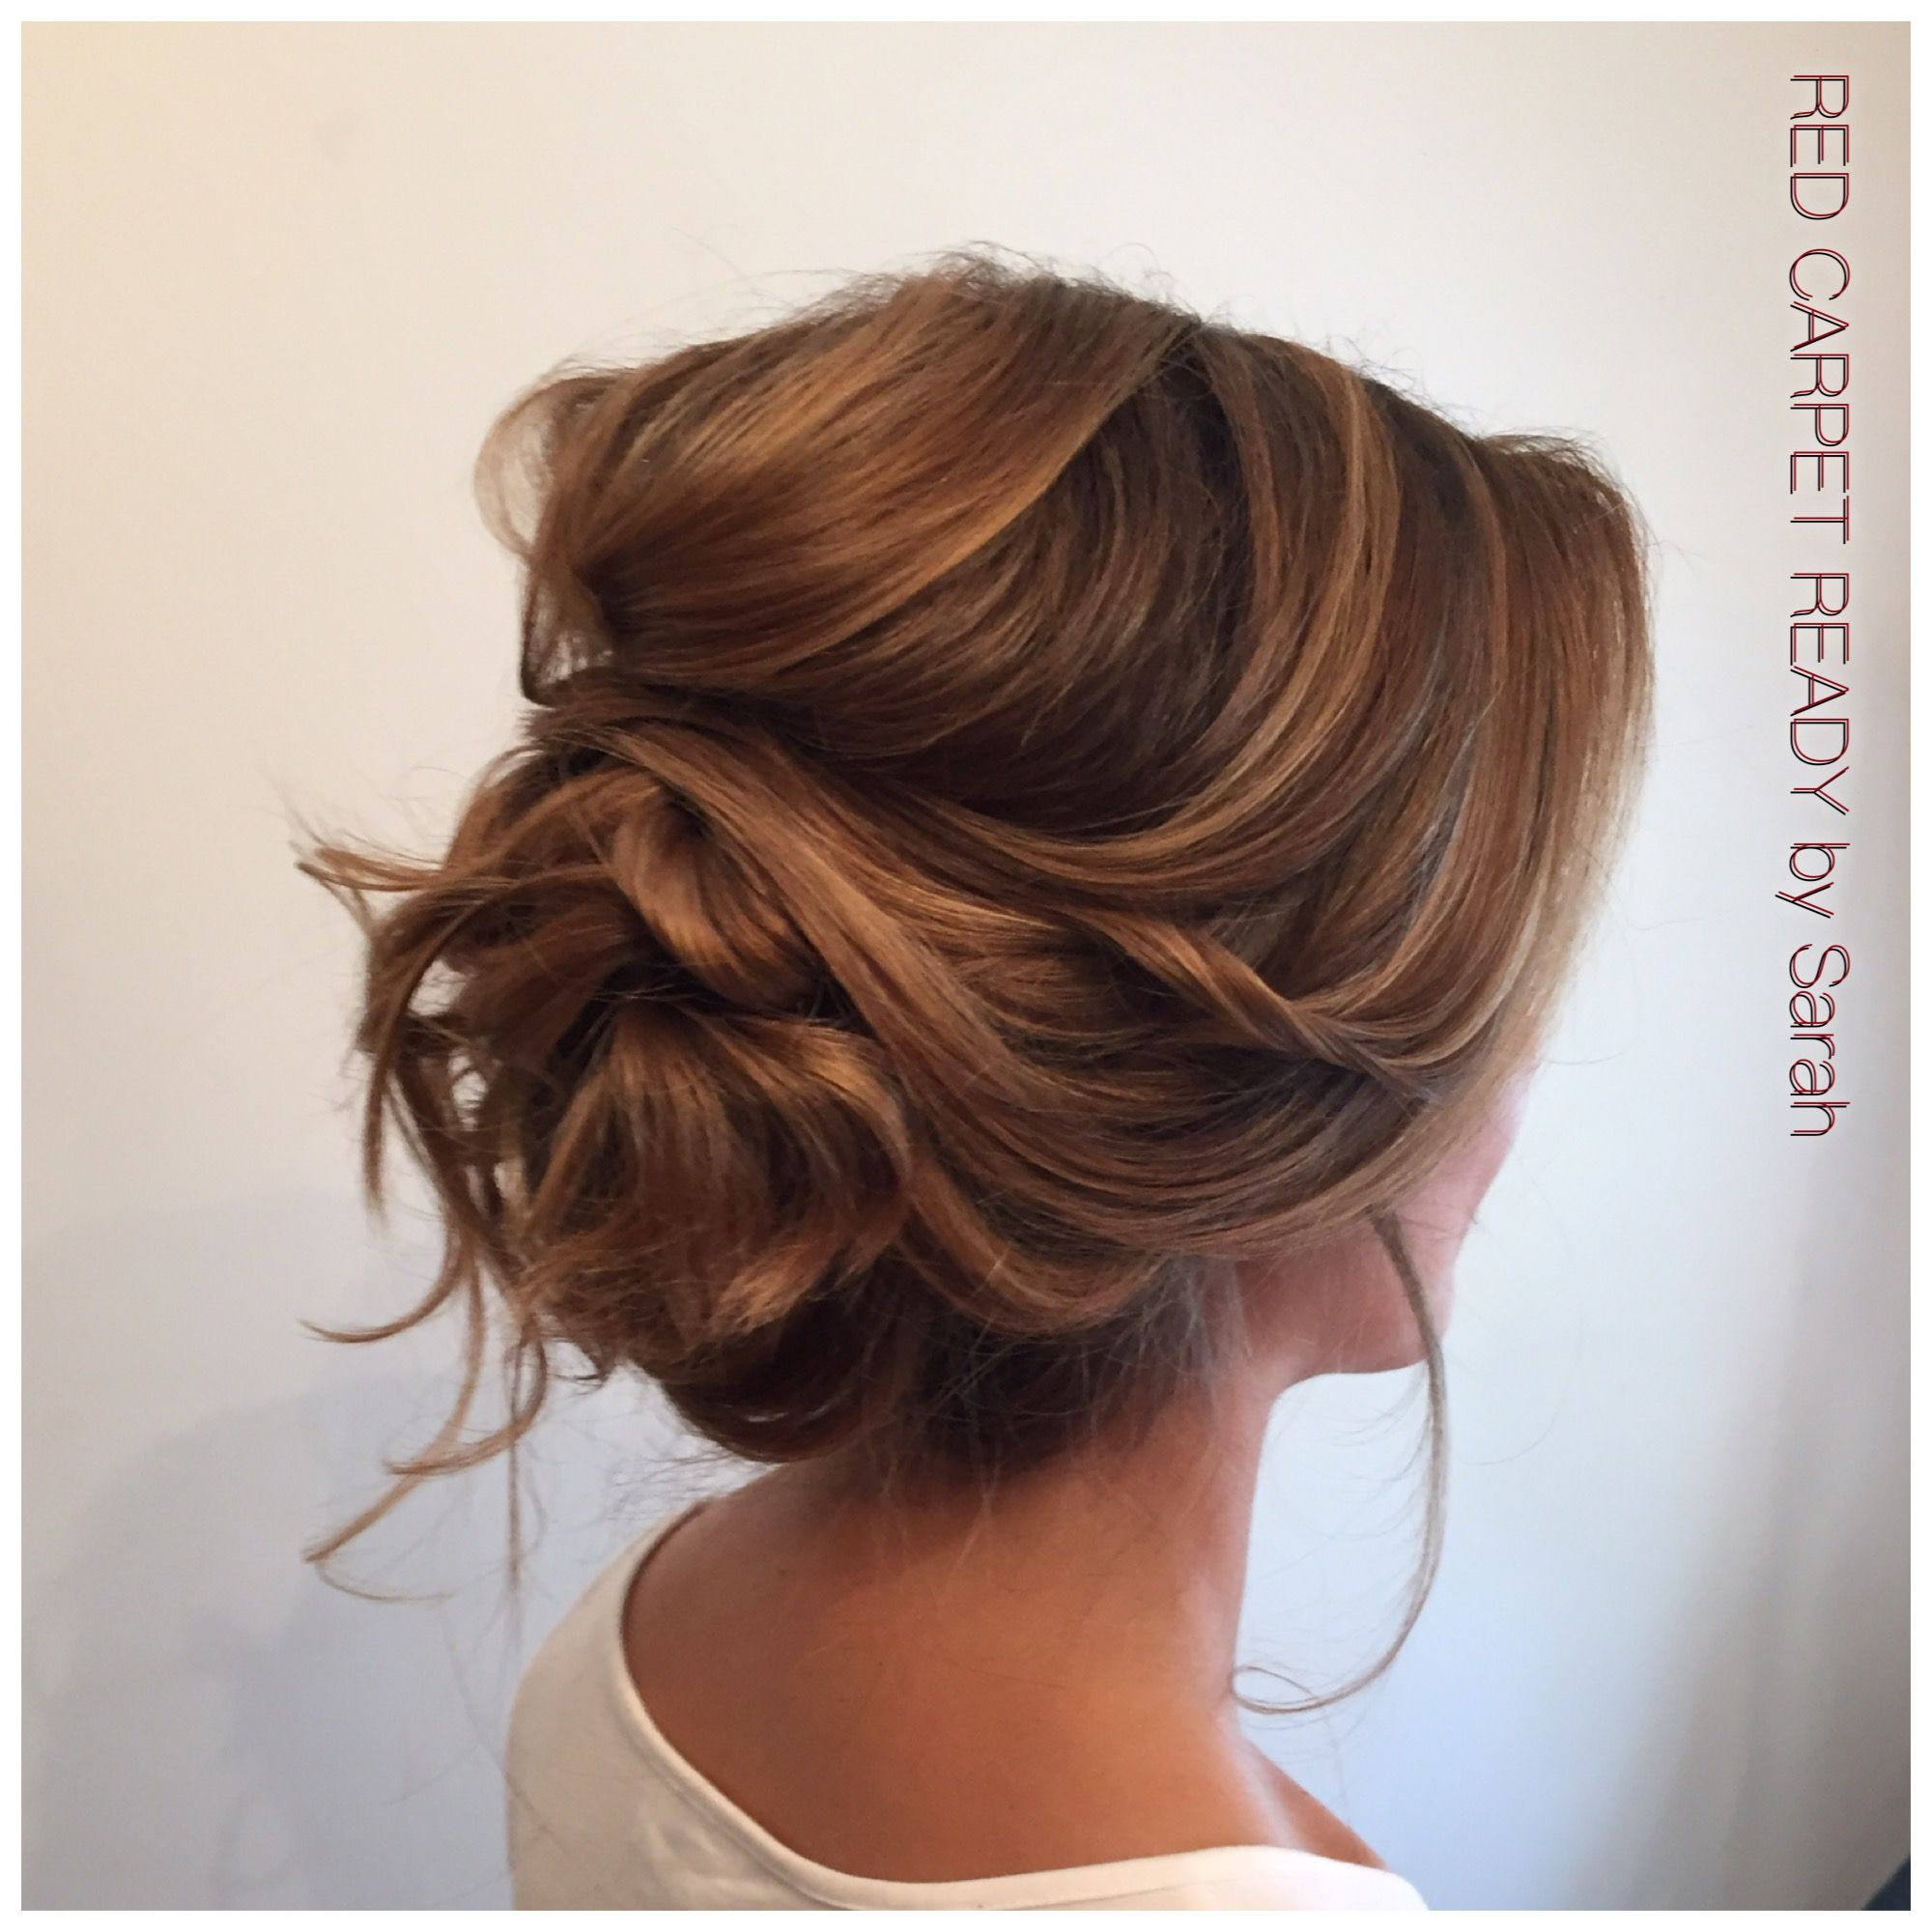 Frisur Standesamt Soft Low Voluminous Updo Hair By Me Frisuren Wedding